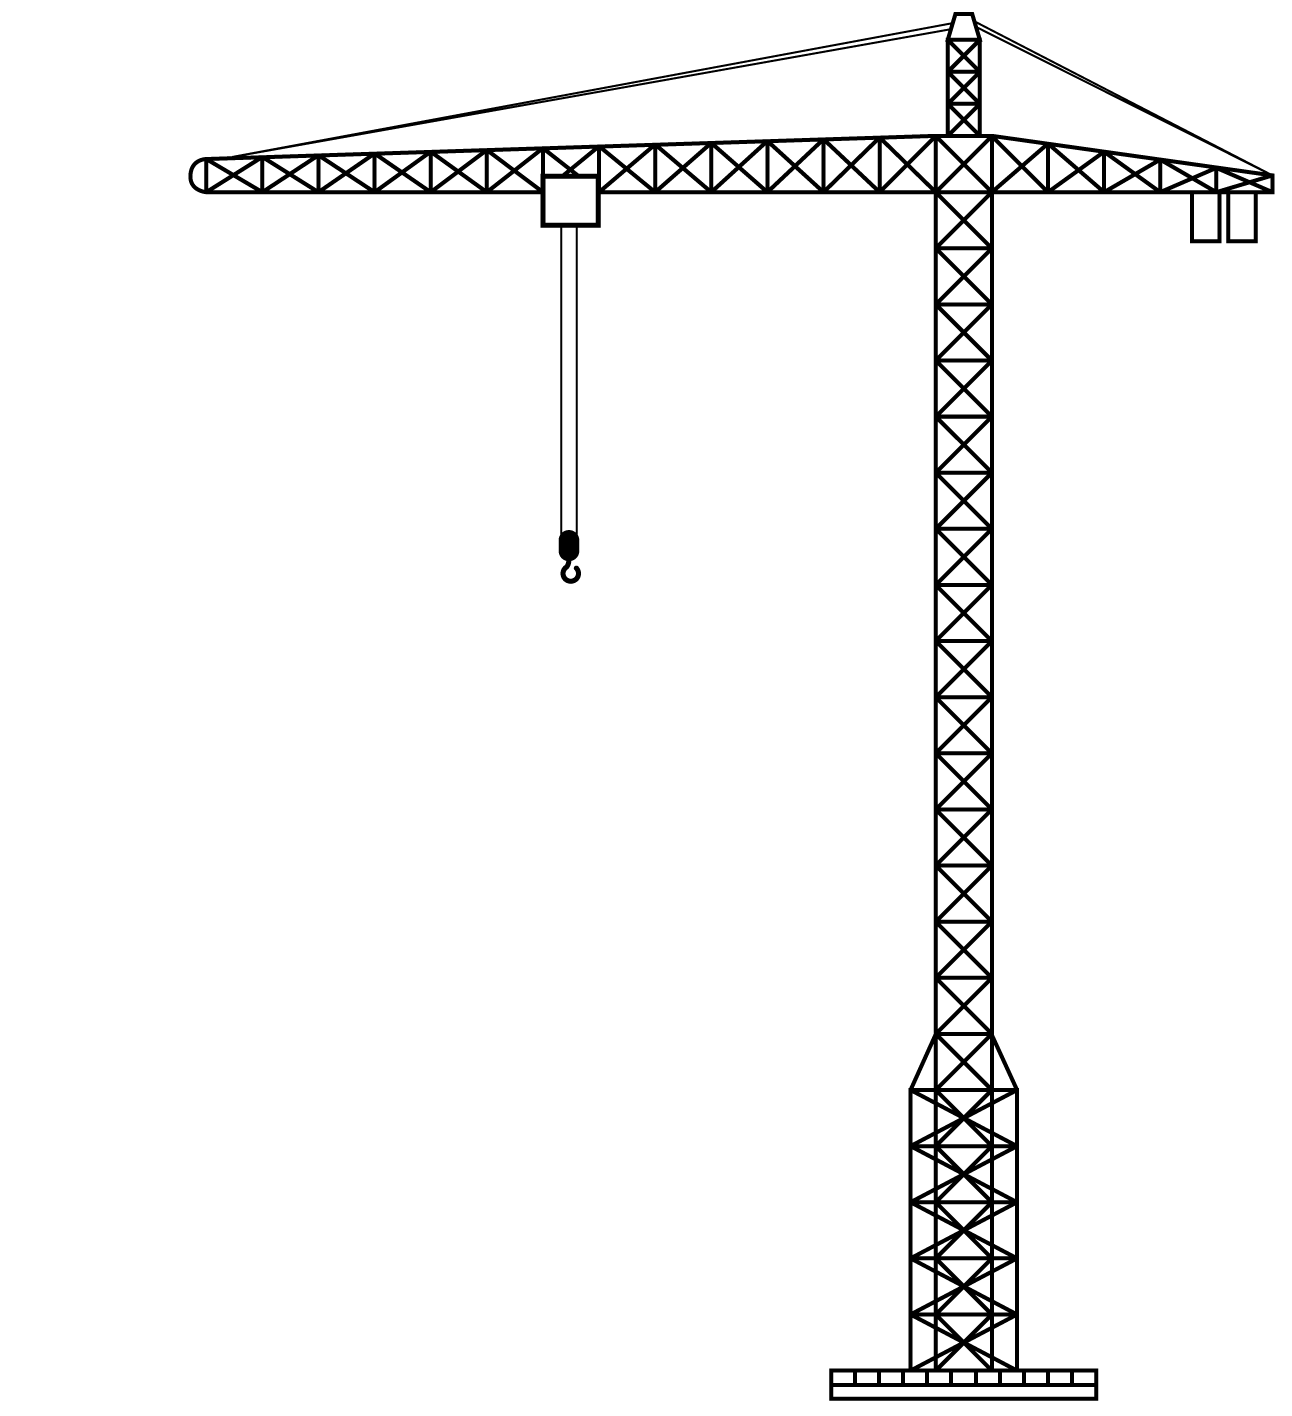 D  Proof Course Dpc moreover 204999342 together with Martelo E Serrote also Grade beam together with Crane Clipart. on construction tools